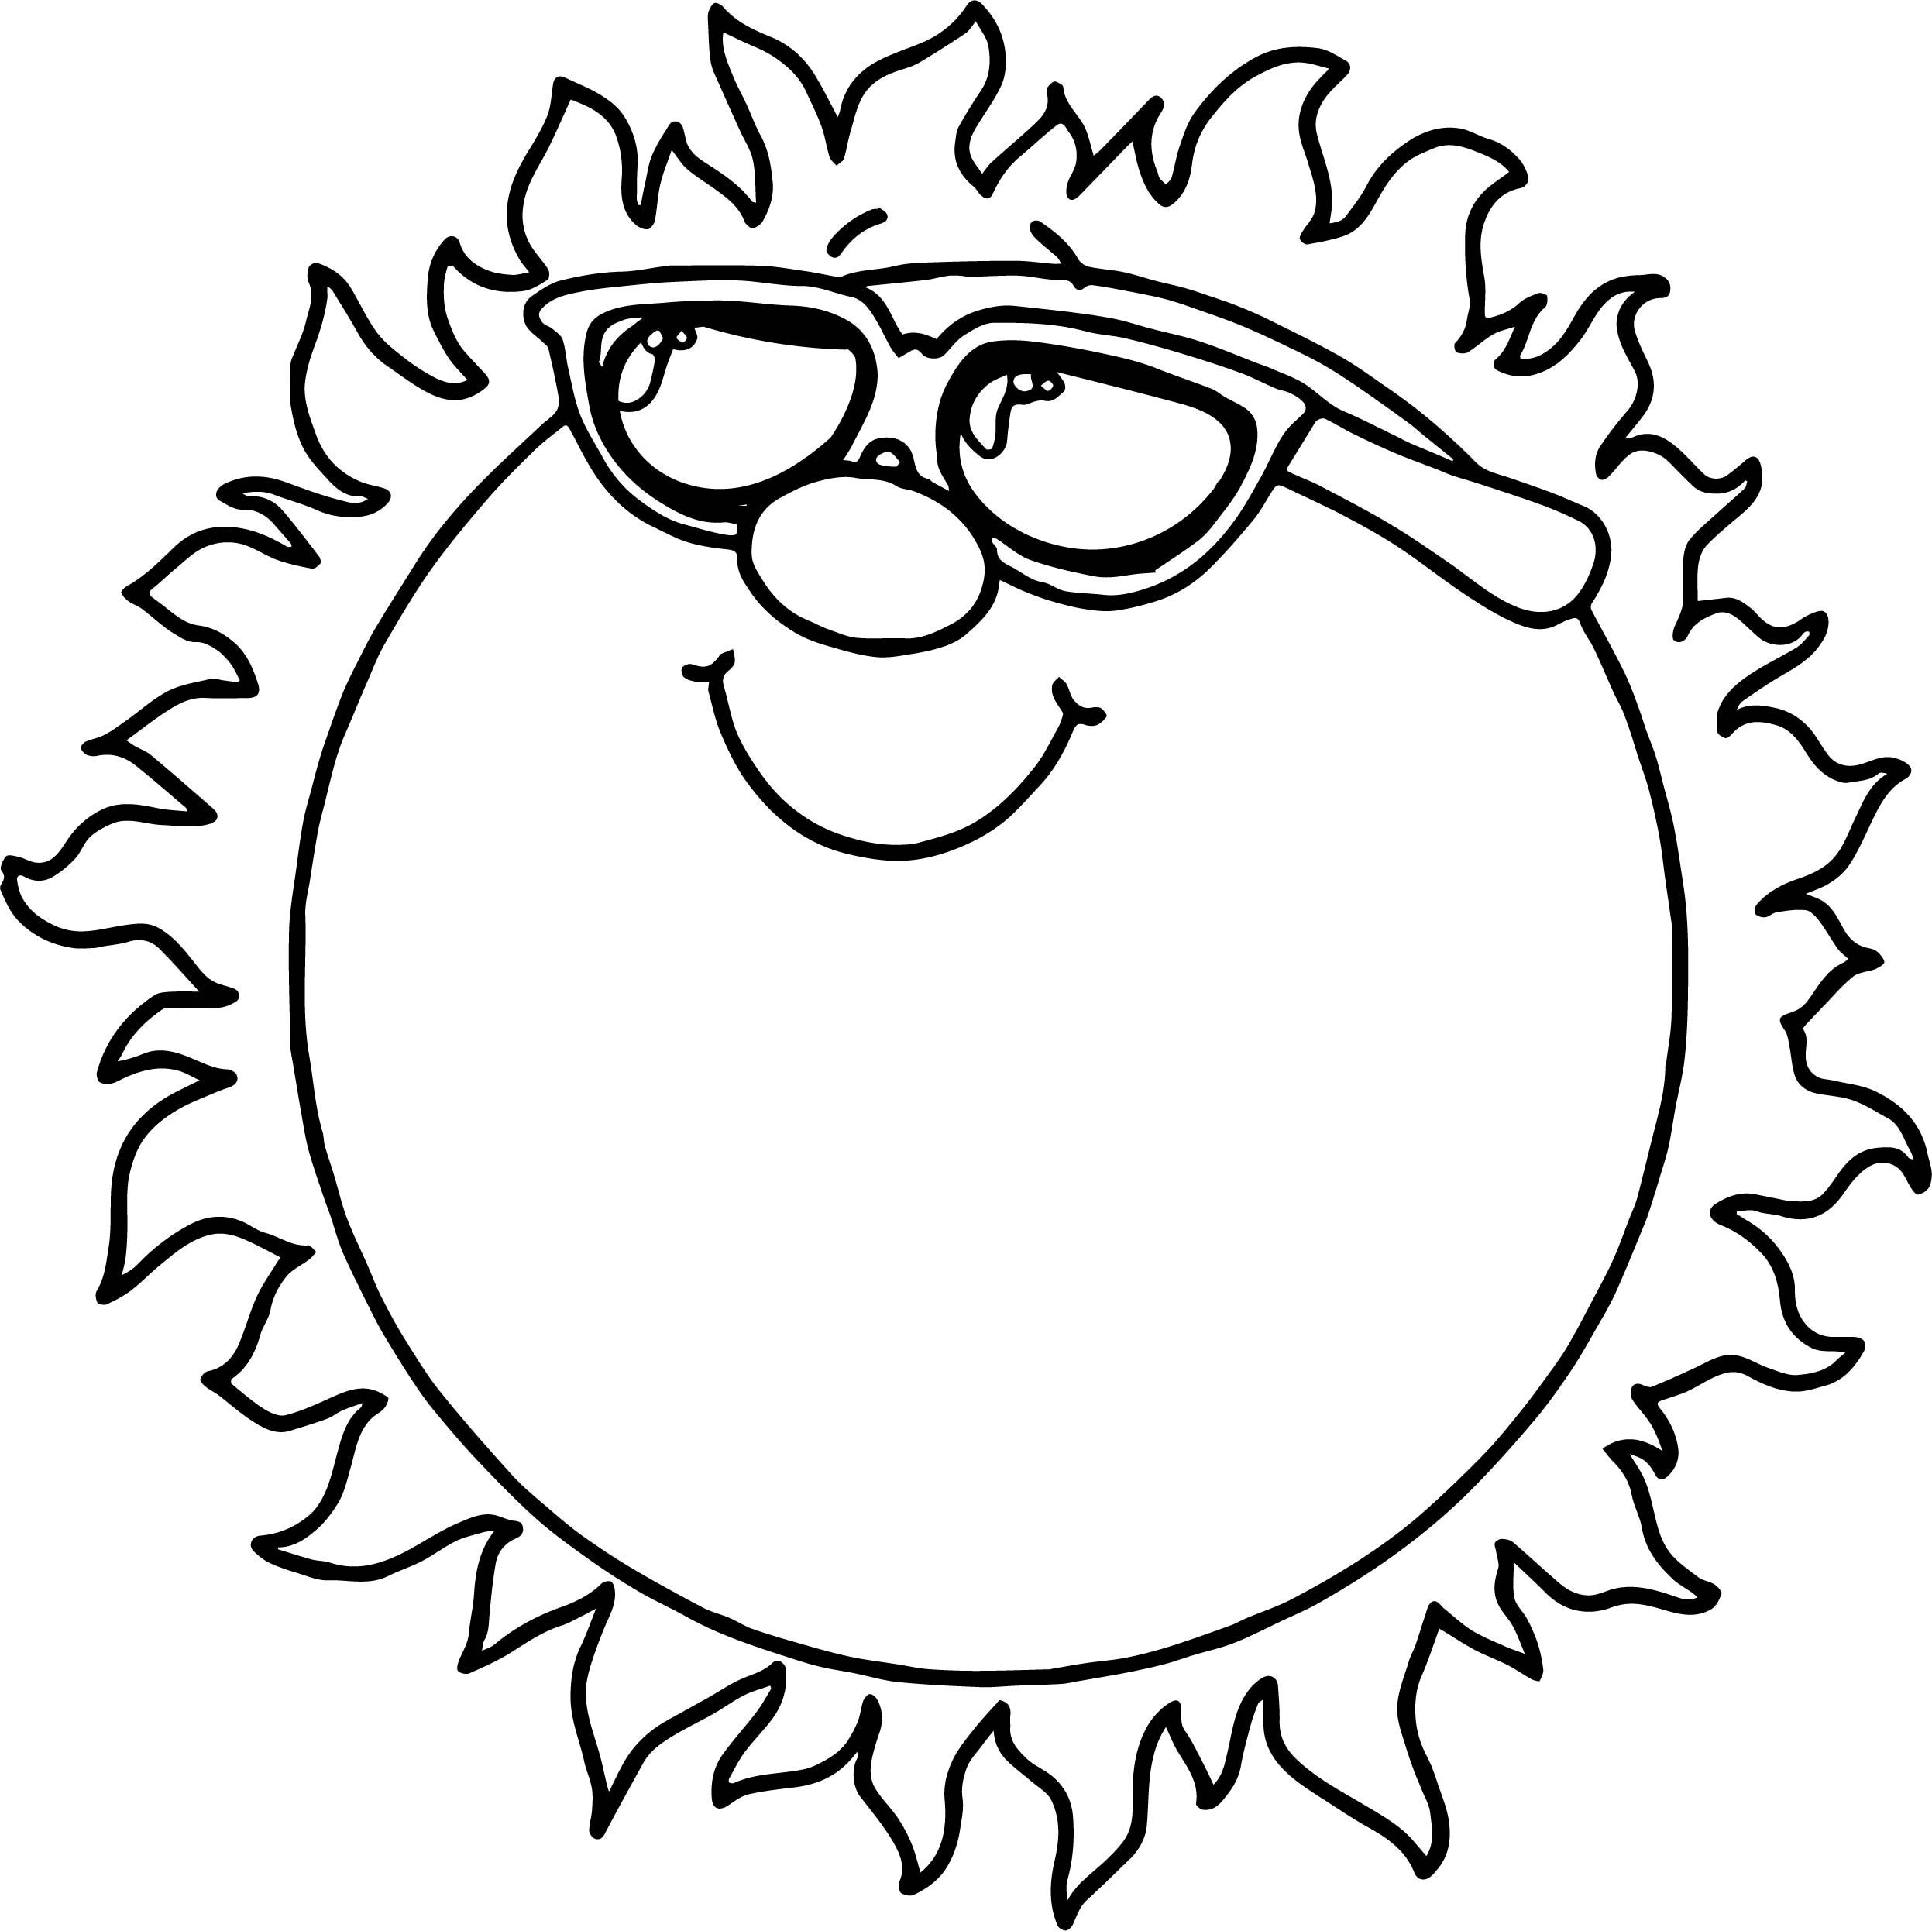 coloring pages suns - photo#28